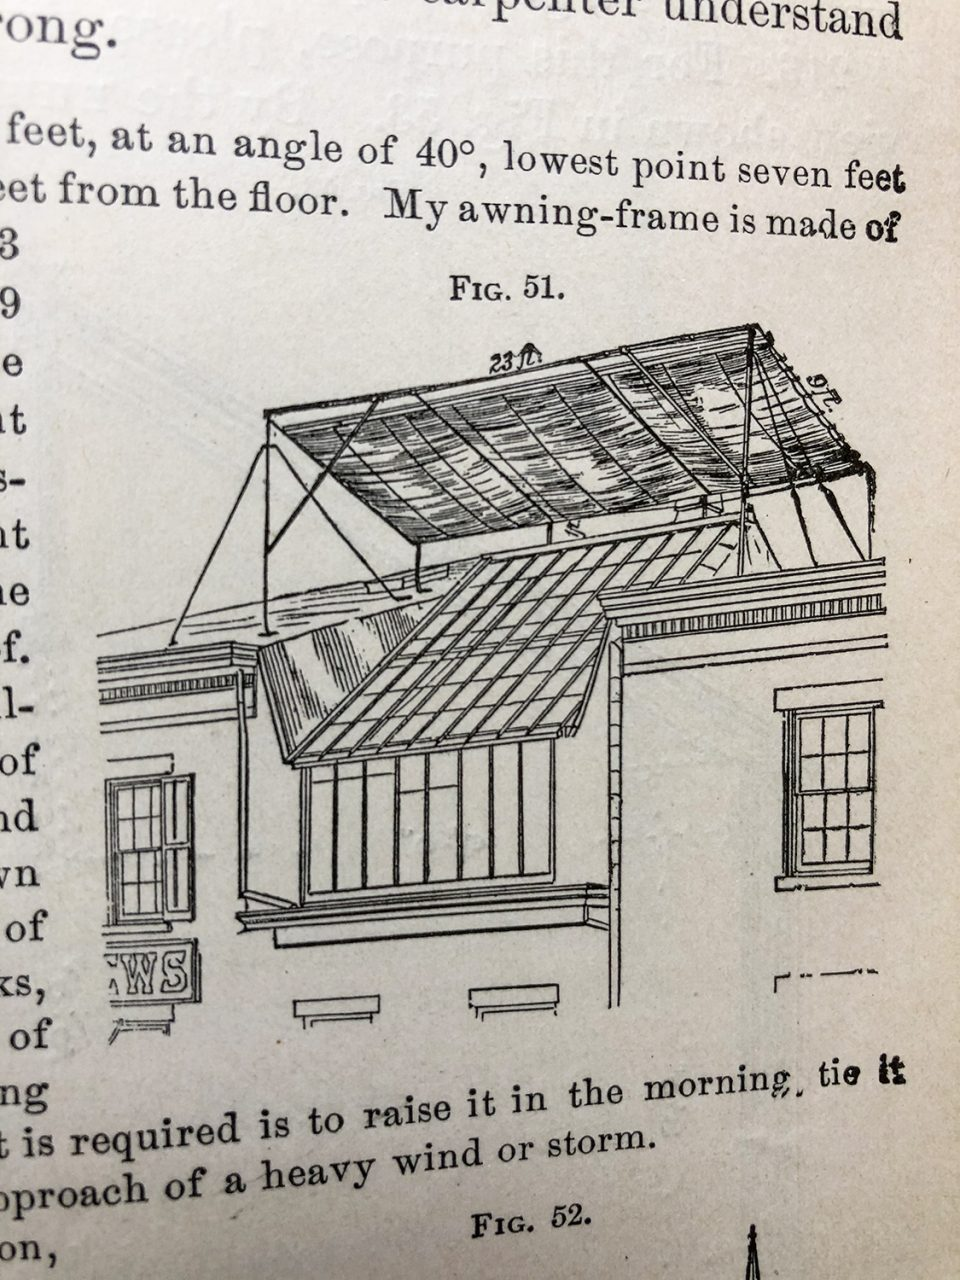 Wilson's Photographics even advises budding photographers on how to build and use skylights. Remember, in 1881, there was no electric studio lighting.